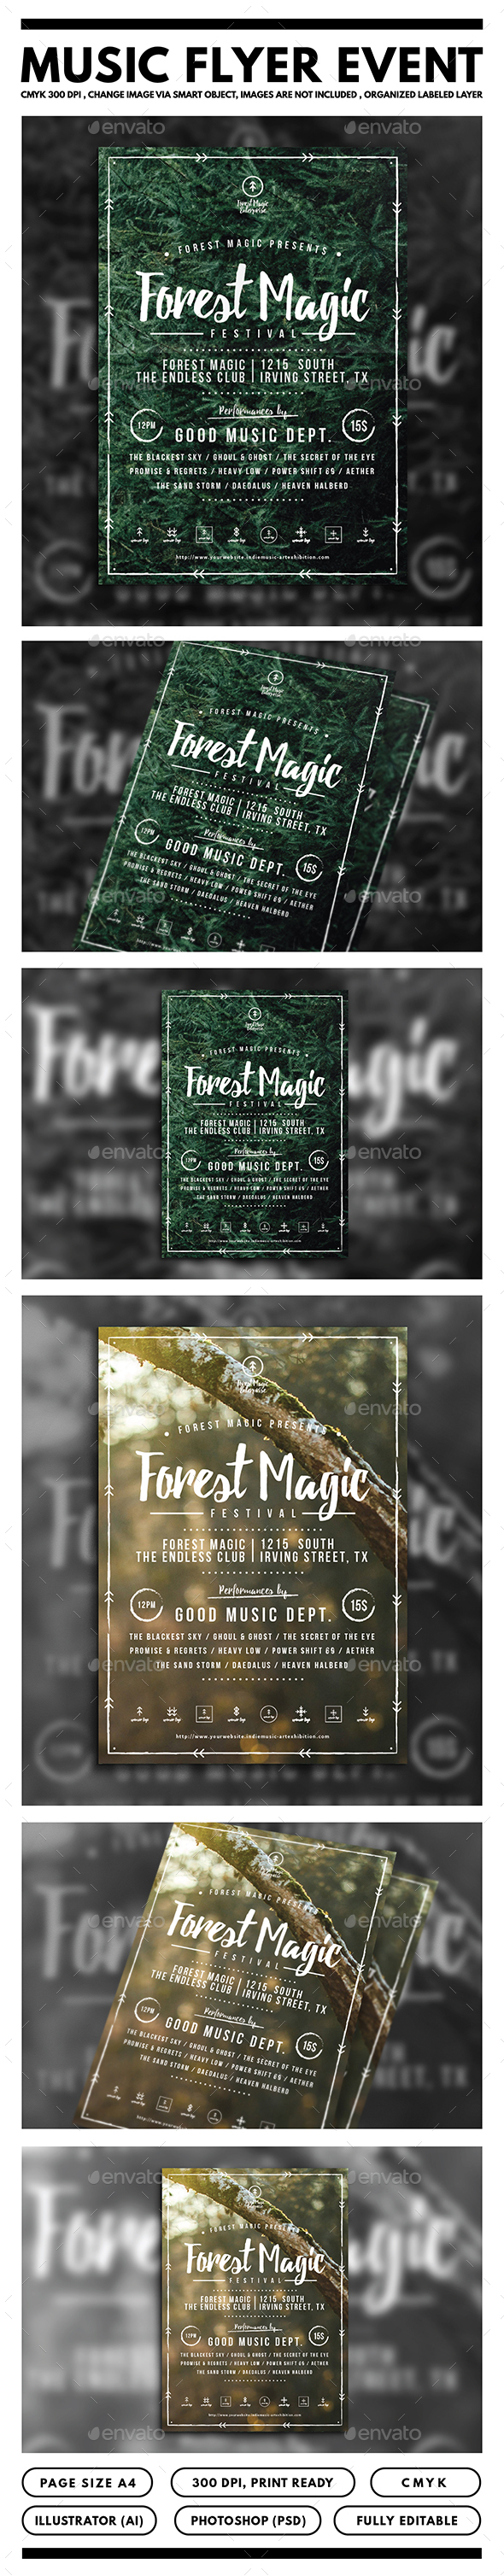 Forest Magic Festival Flyer - Events Flyers